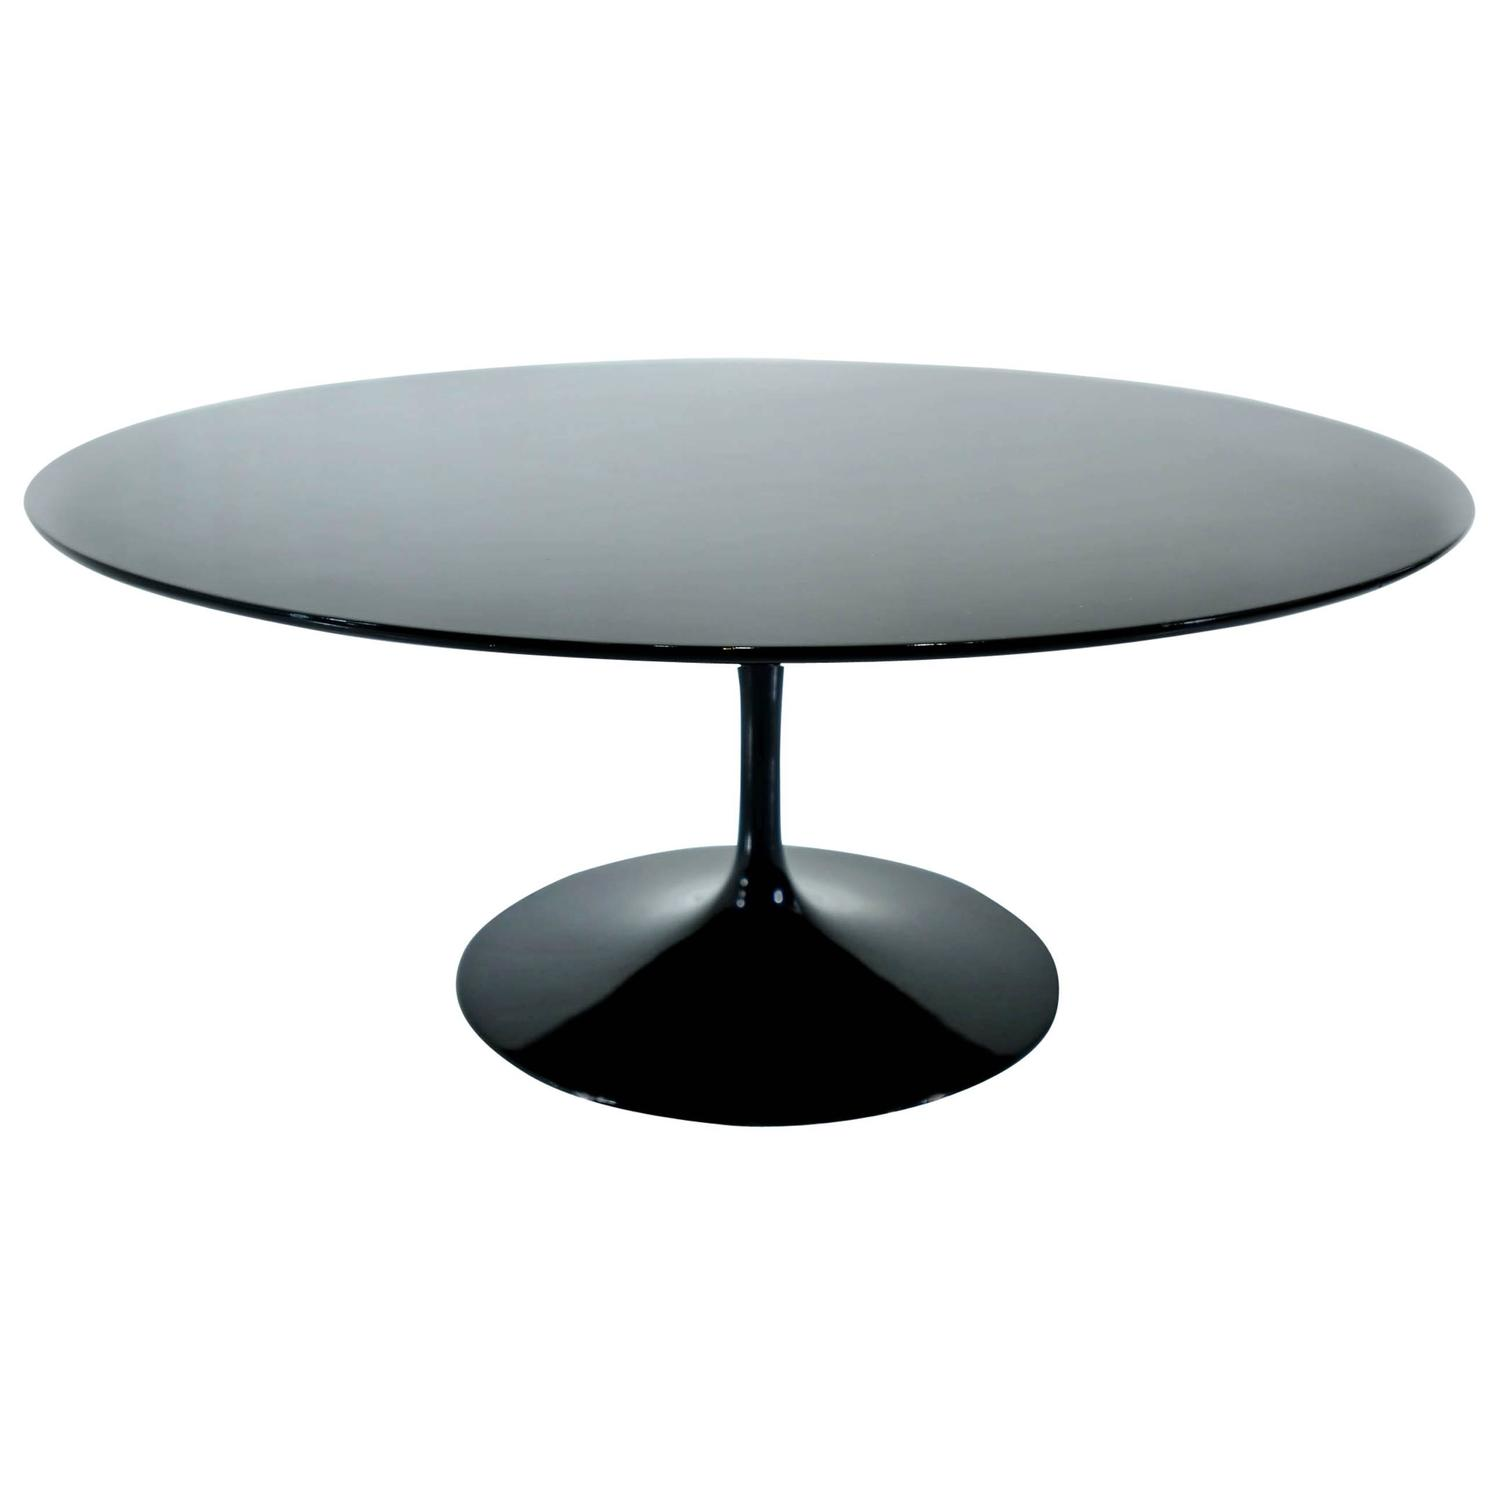 Eero saarinen tulip round coffee table at 1stdibs Round espresso coffee table